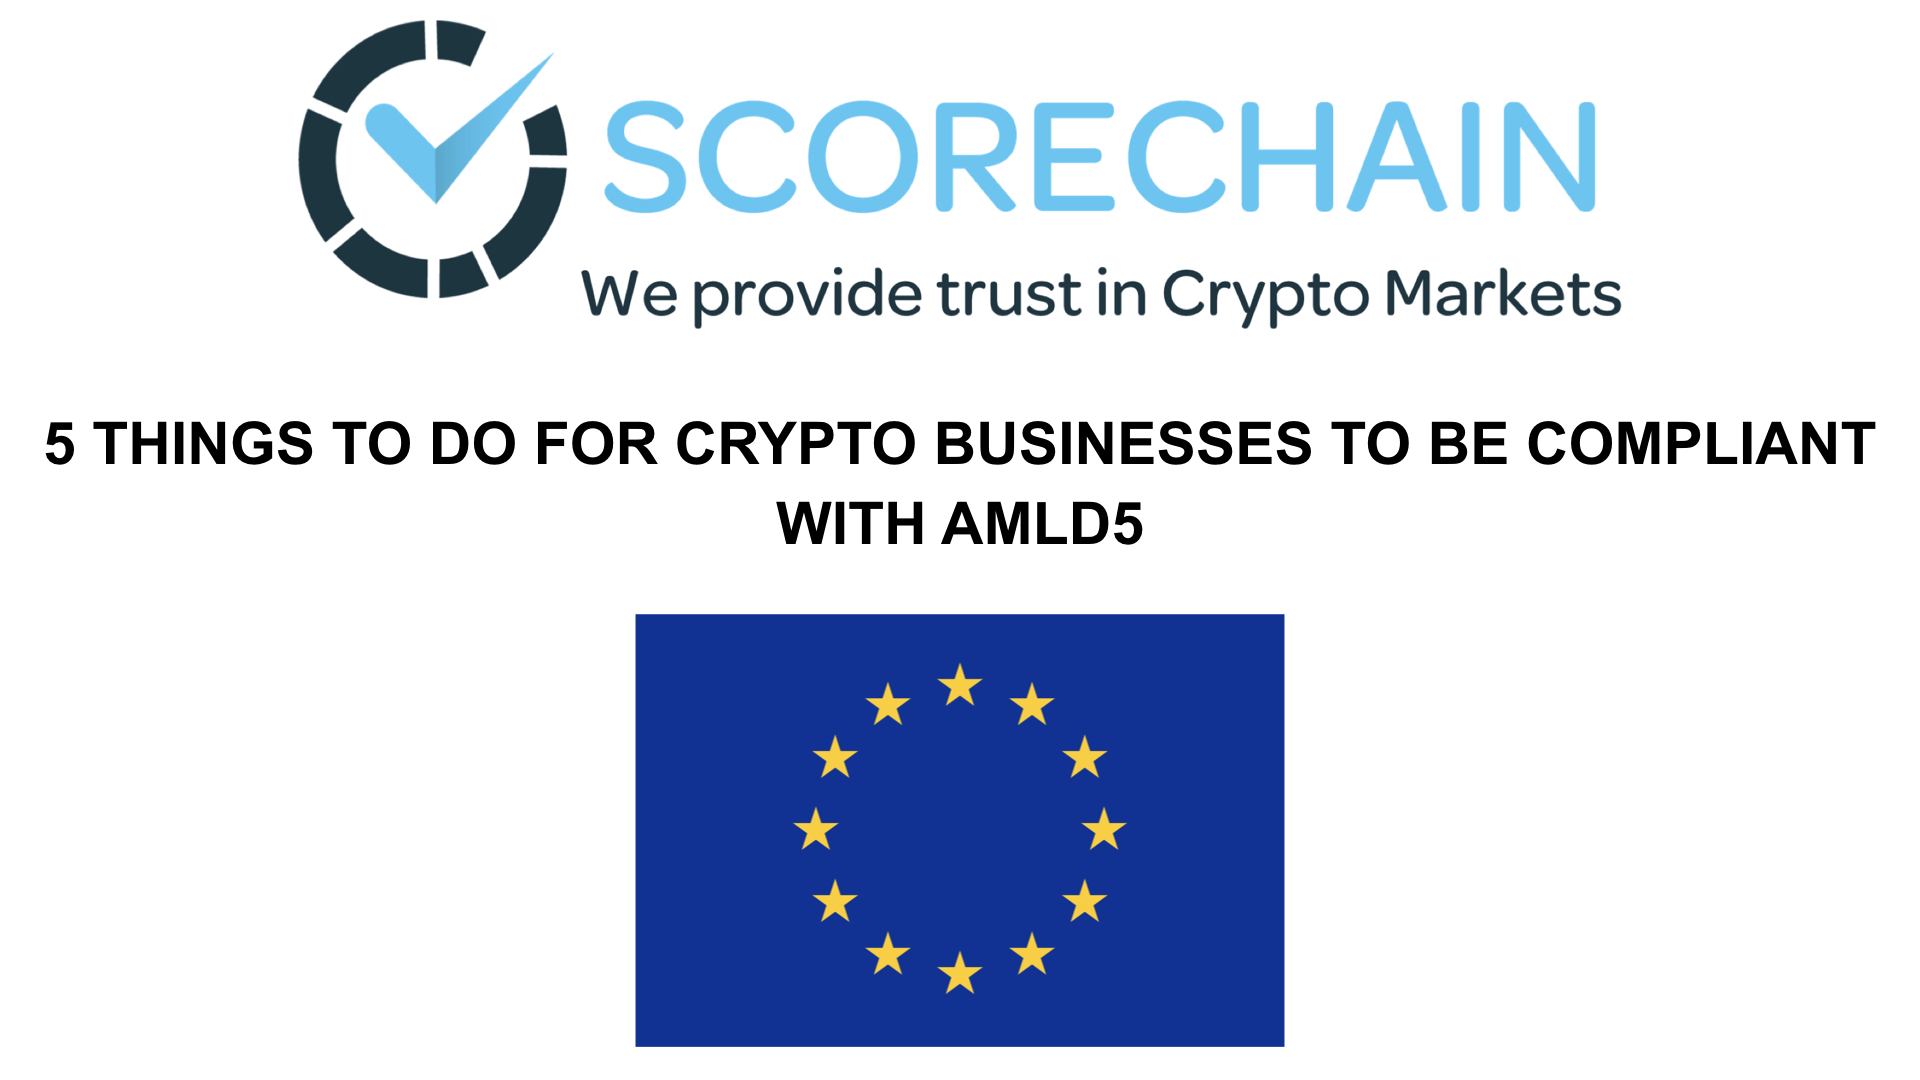 AMLD5 Cryptocurrency